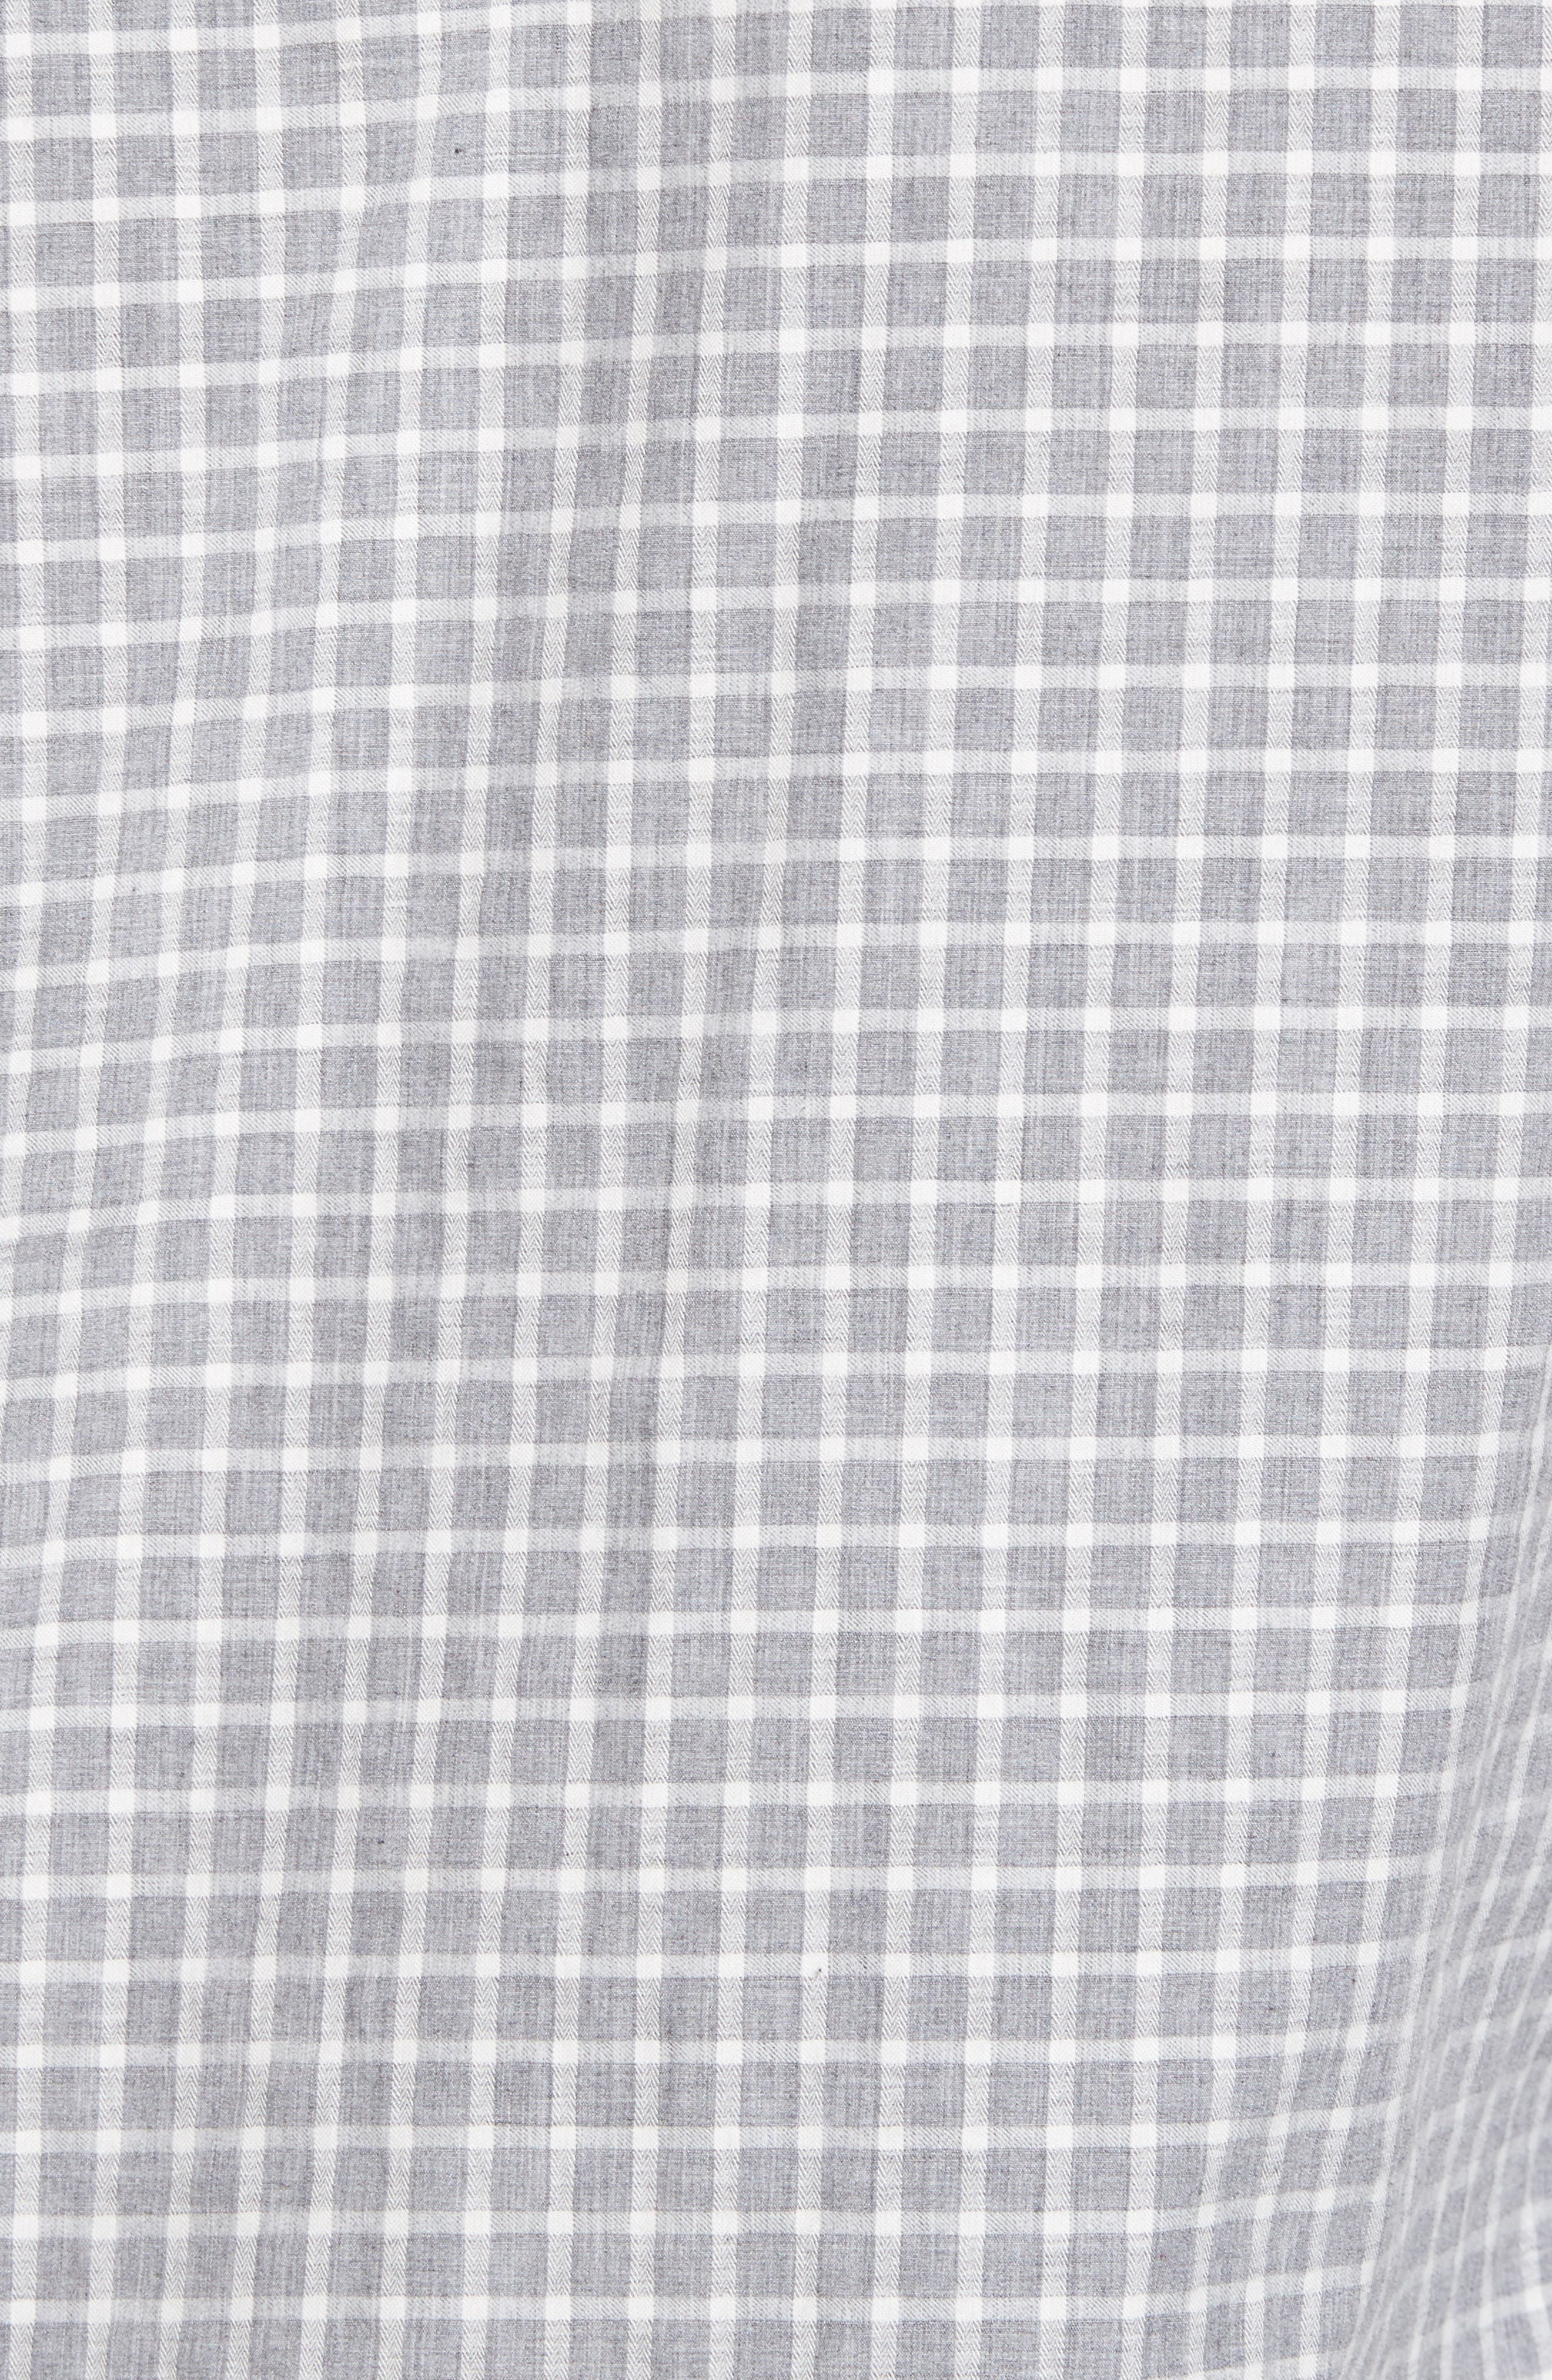 Illusions Woven Shirt,                             Alternate thumbnail 5, color,                             Lt. Grey